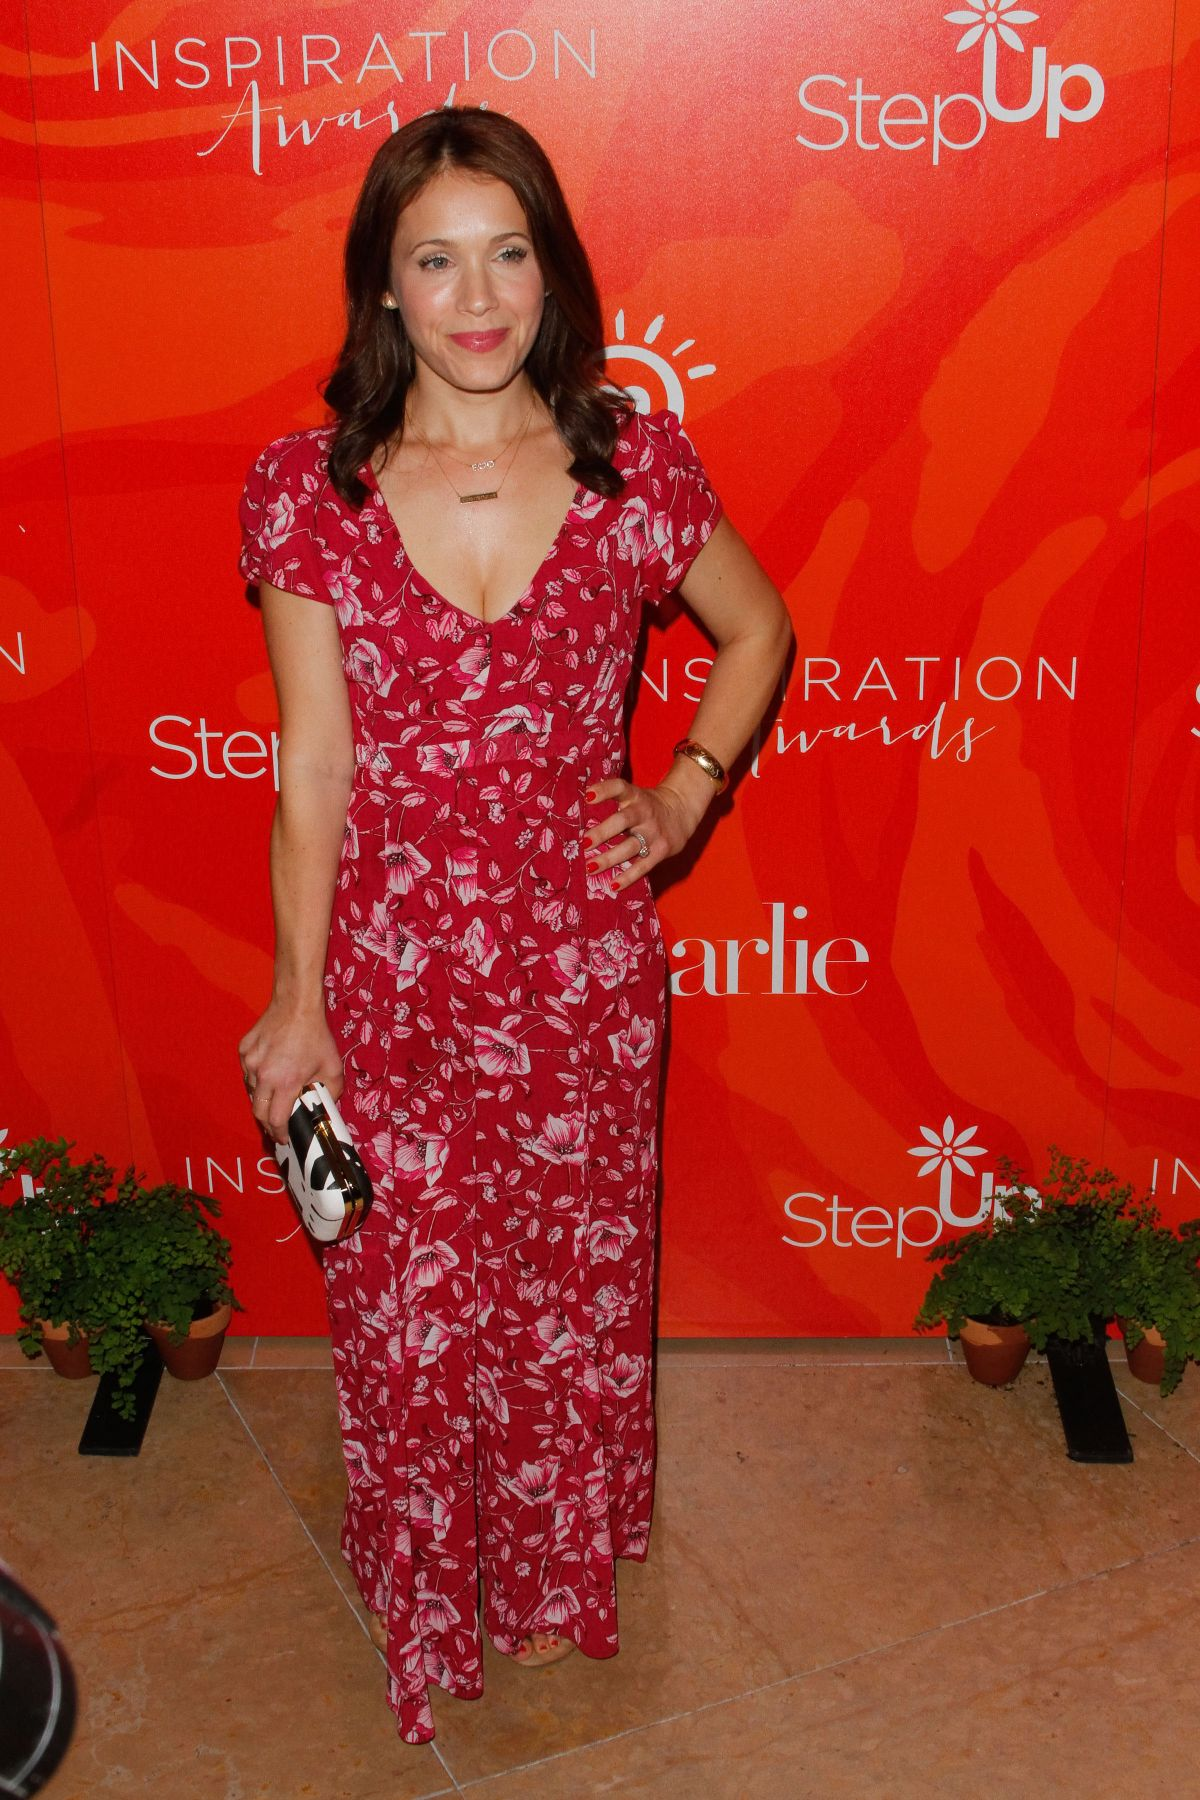 MARLA SOKOLOFF at 13th Annual Inspiration Awards to Benefit Step Up in Beverly Hills 05/20/2016